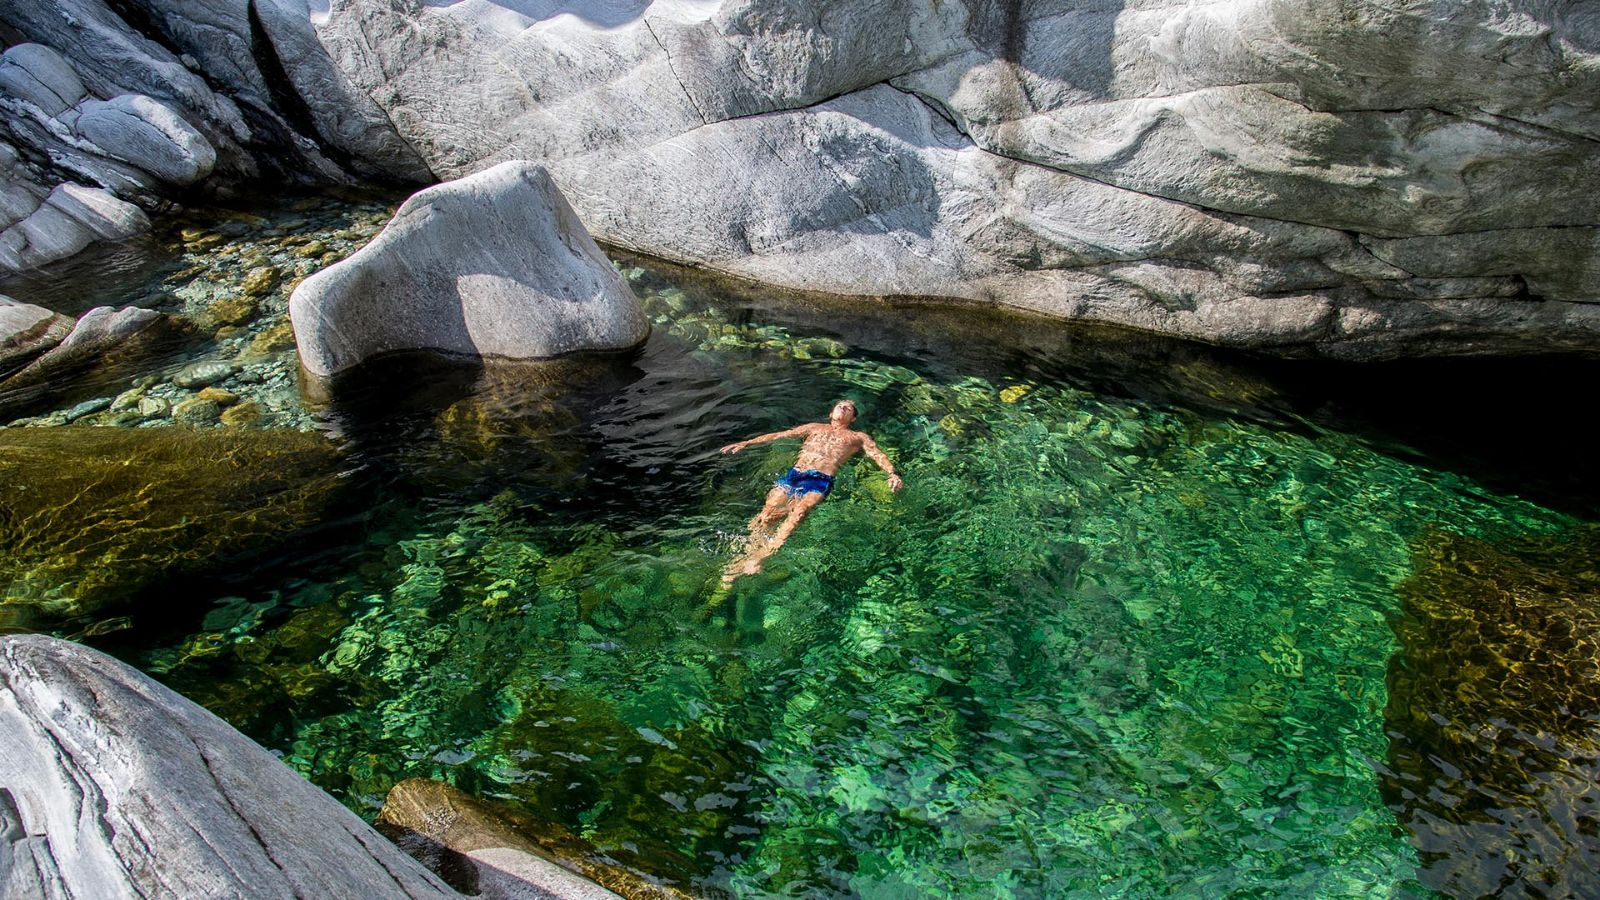 Swim in the Maggia river